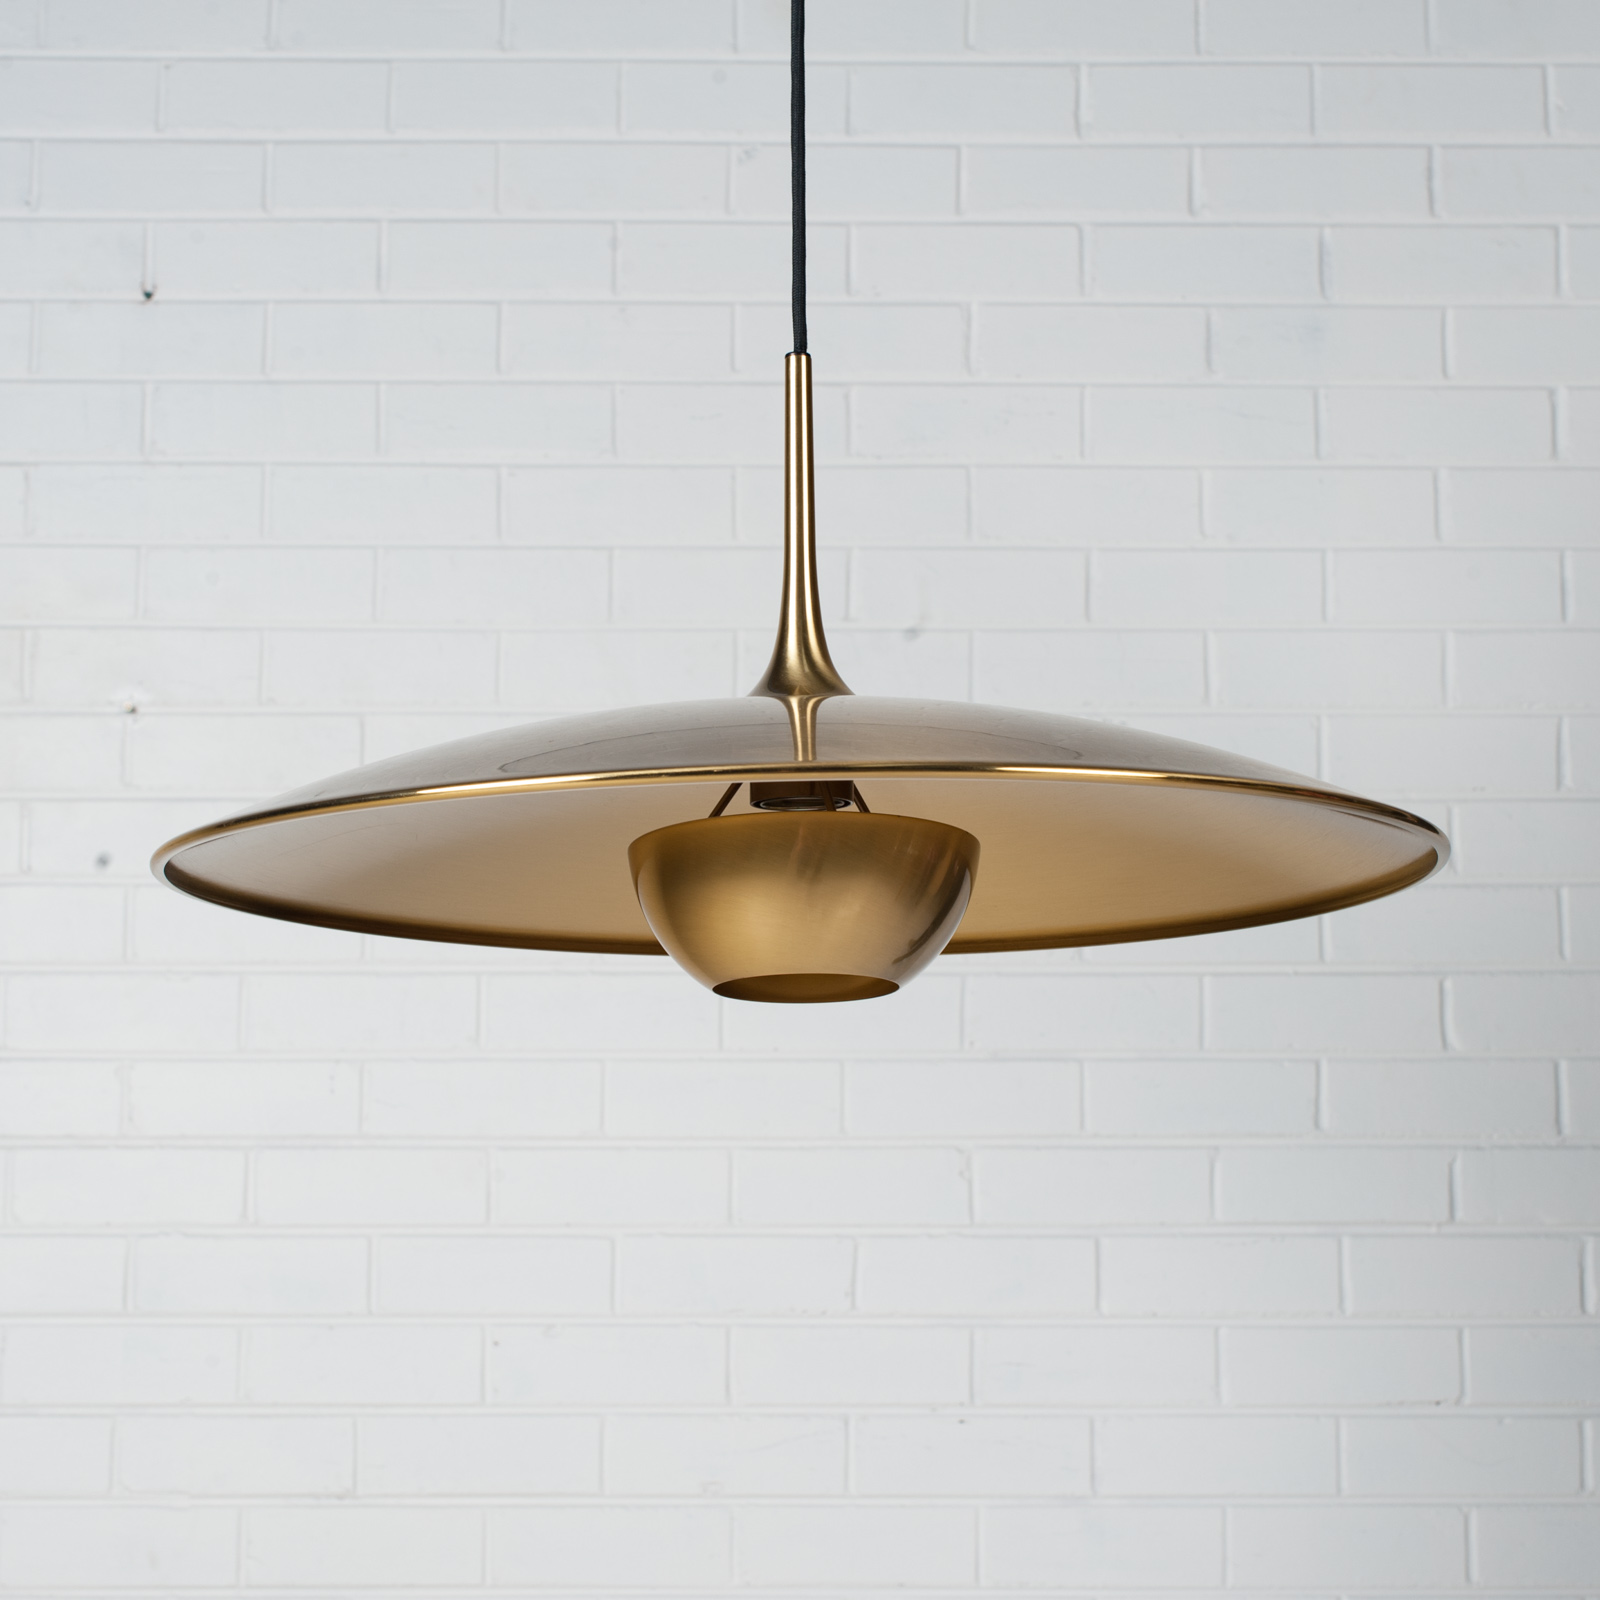 Onos 55 Counterbalance Pendant By Florian Schulz In Brass 1970s Germany 03